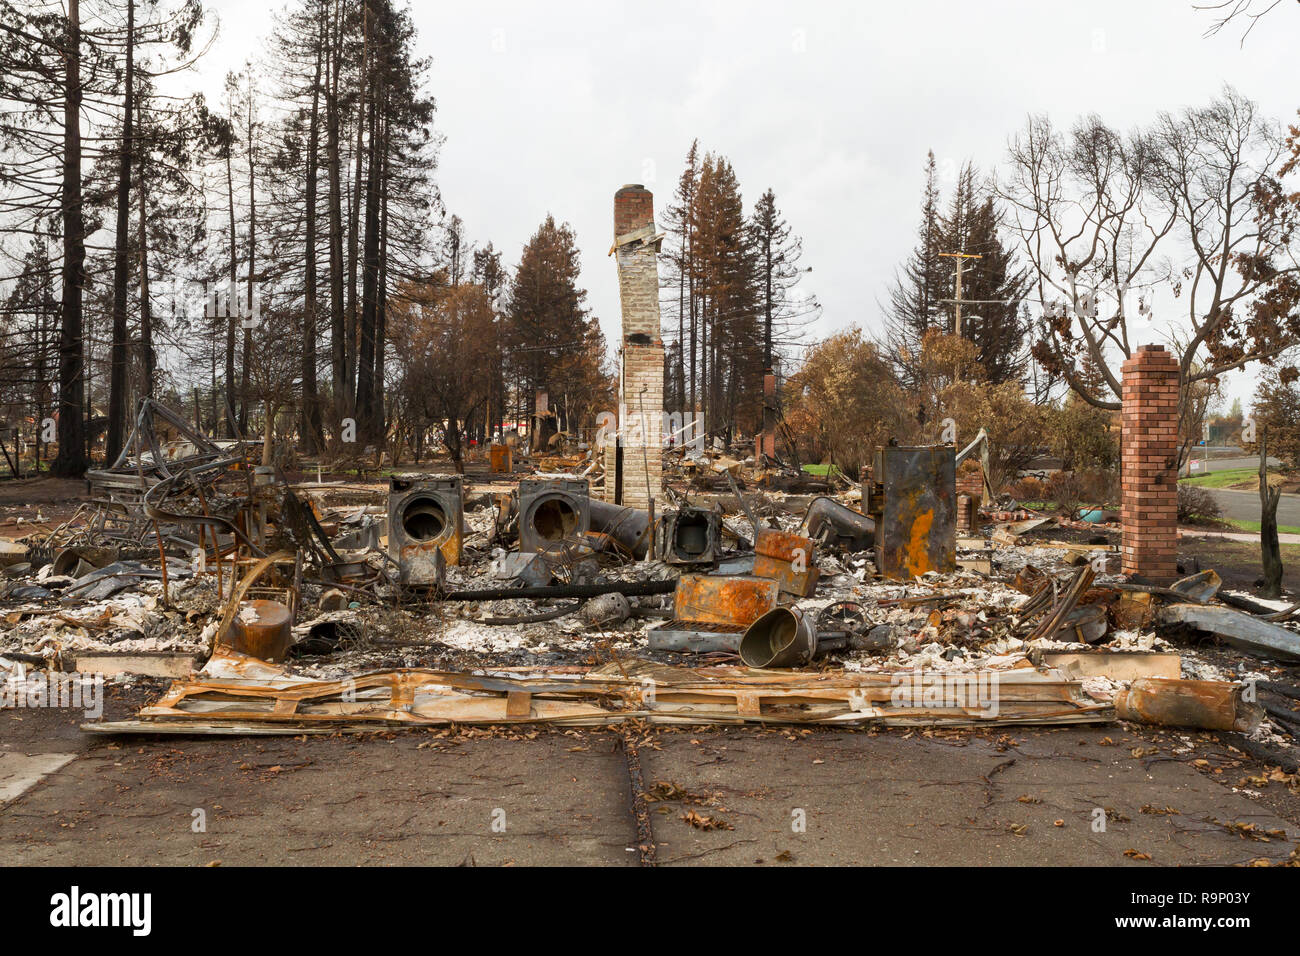 Lost Home - These images were captured in neighborhoods near Santa Rosa, California, where wildfires in early October 2017. - Stock Image